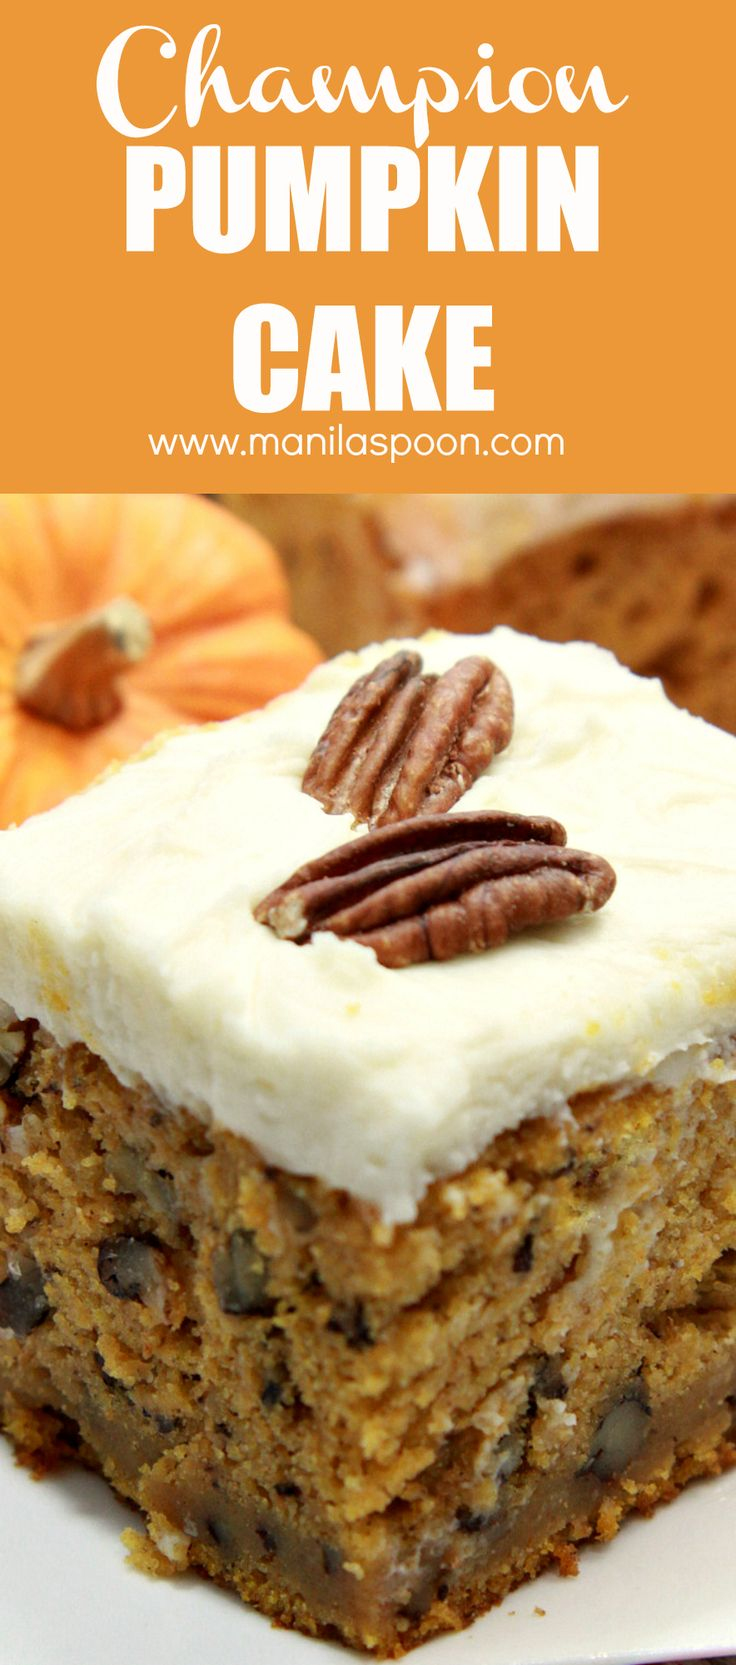 This champion pumpkin cake is perfectly spiced and comes out moist and scrumptious and the cream cheese frosting and added pecans make this a winner every time!  #pumpkin #cake